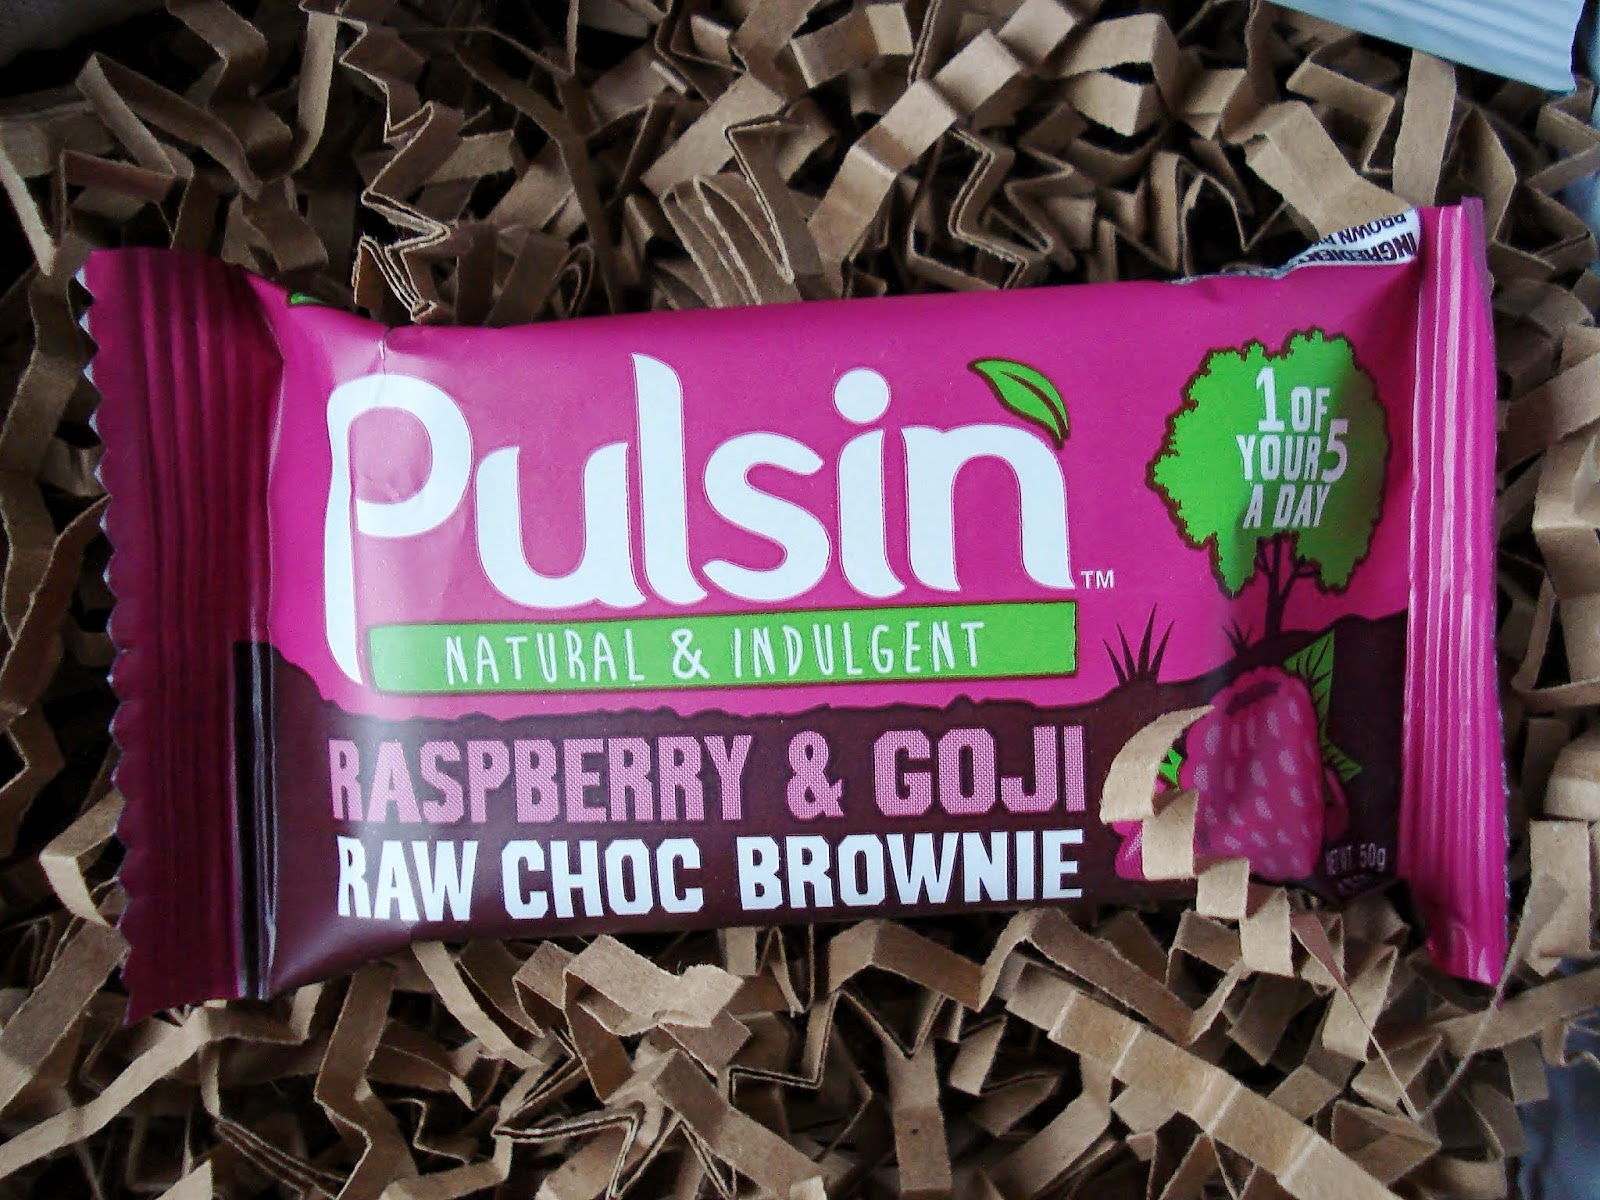 Pulsin Raspberry and Goji Raw Choc Brownie